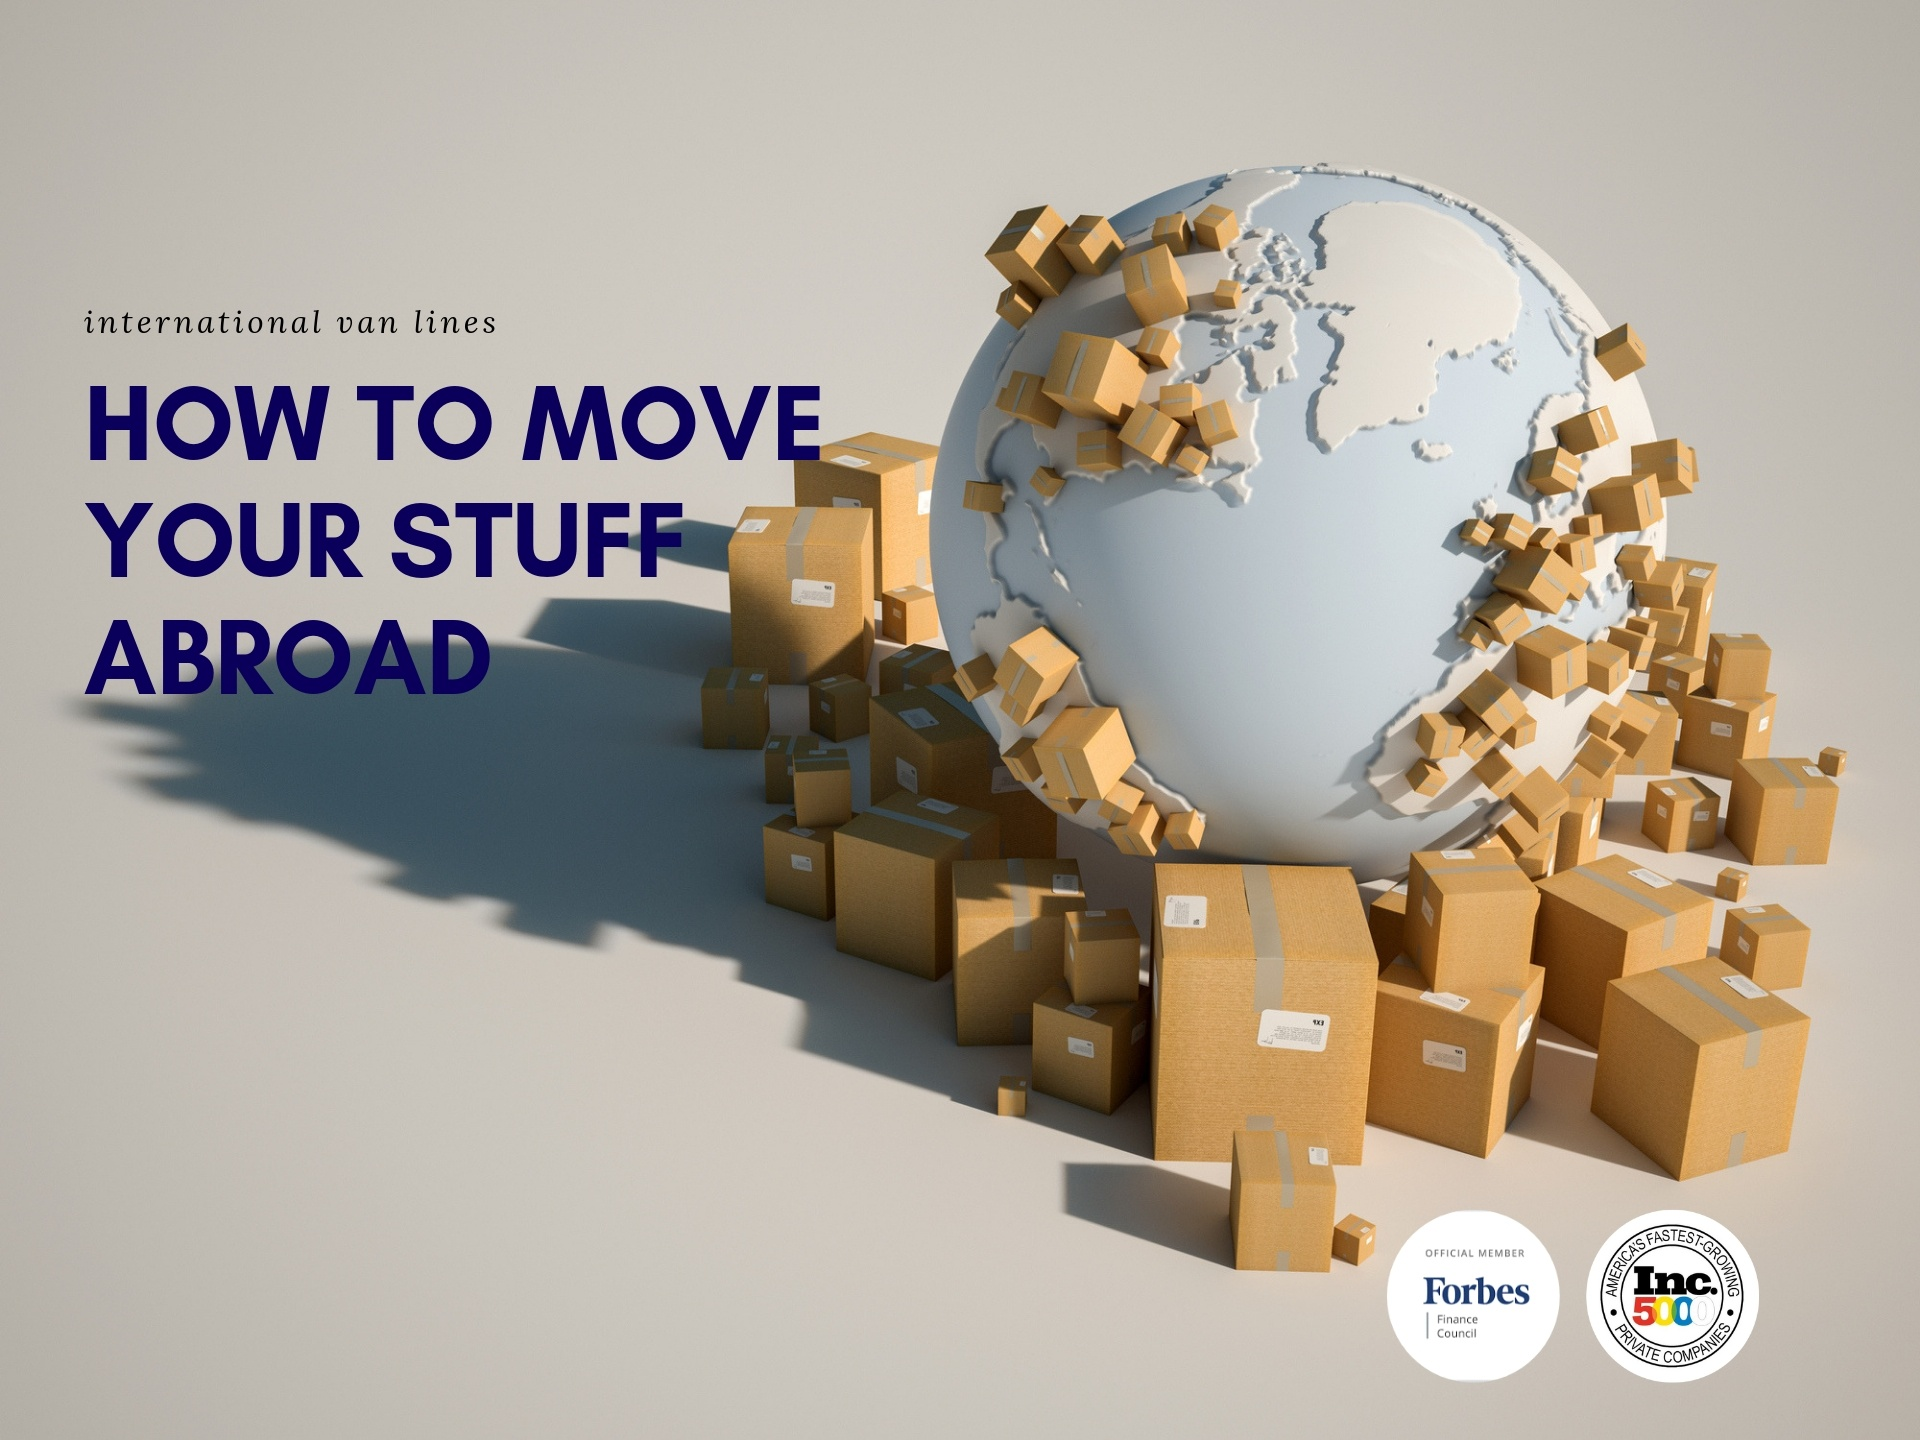 How to move your stuff abroad